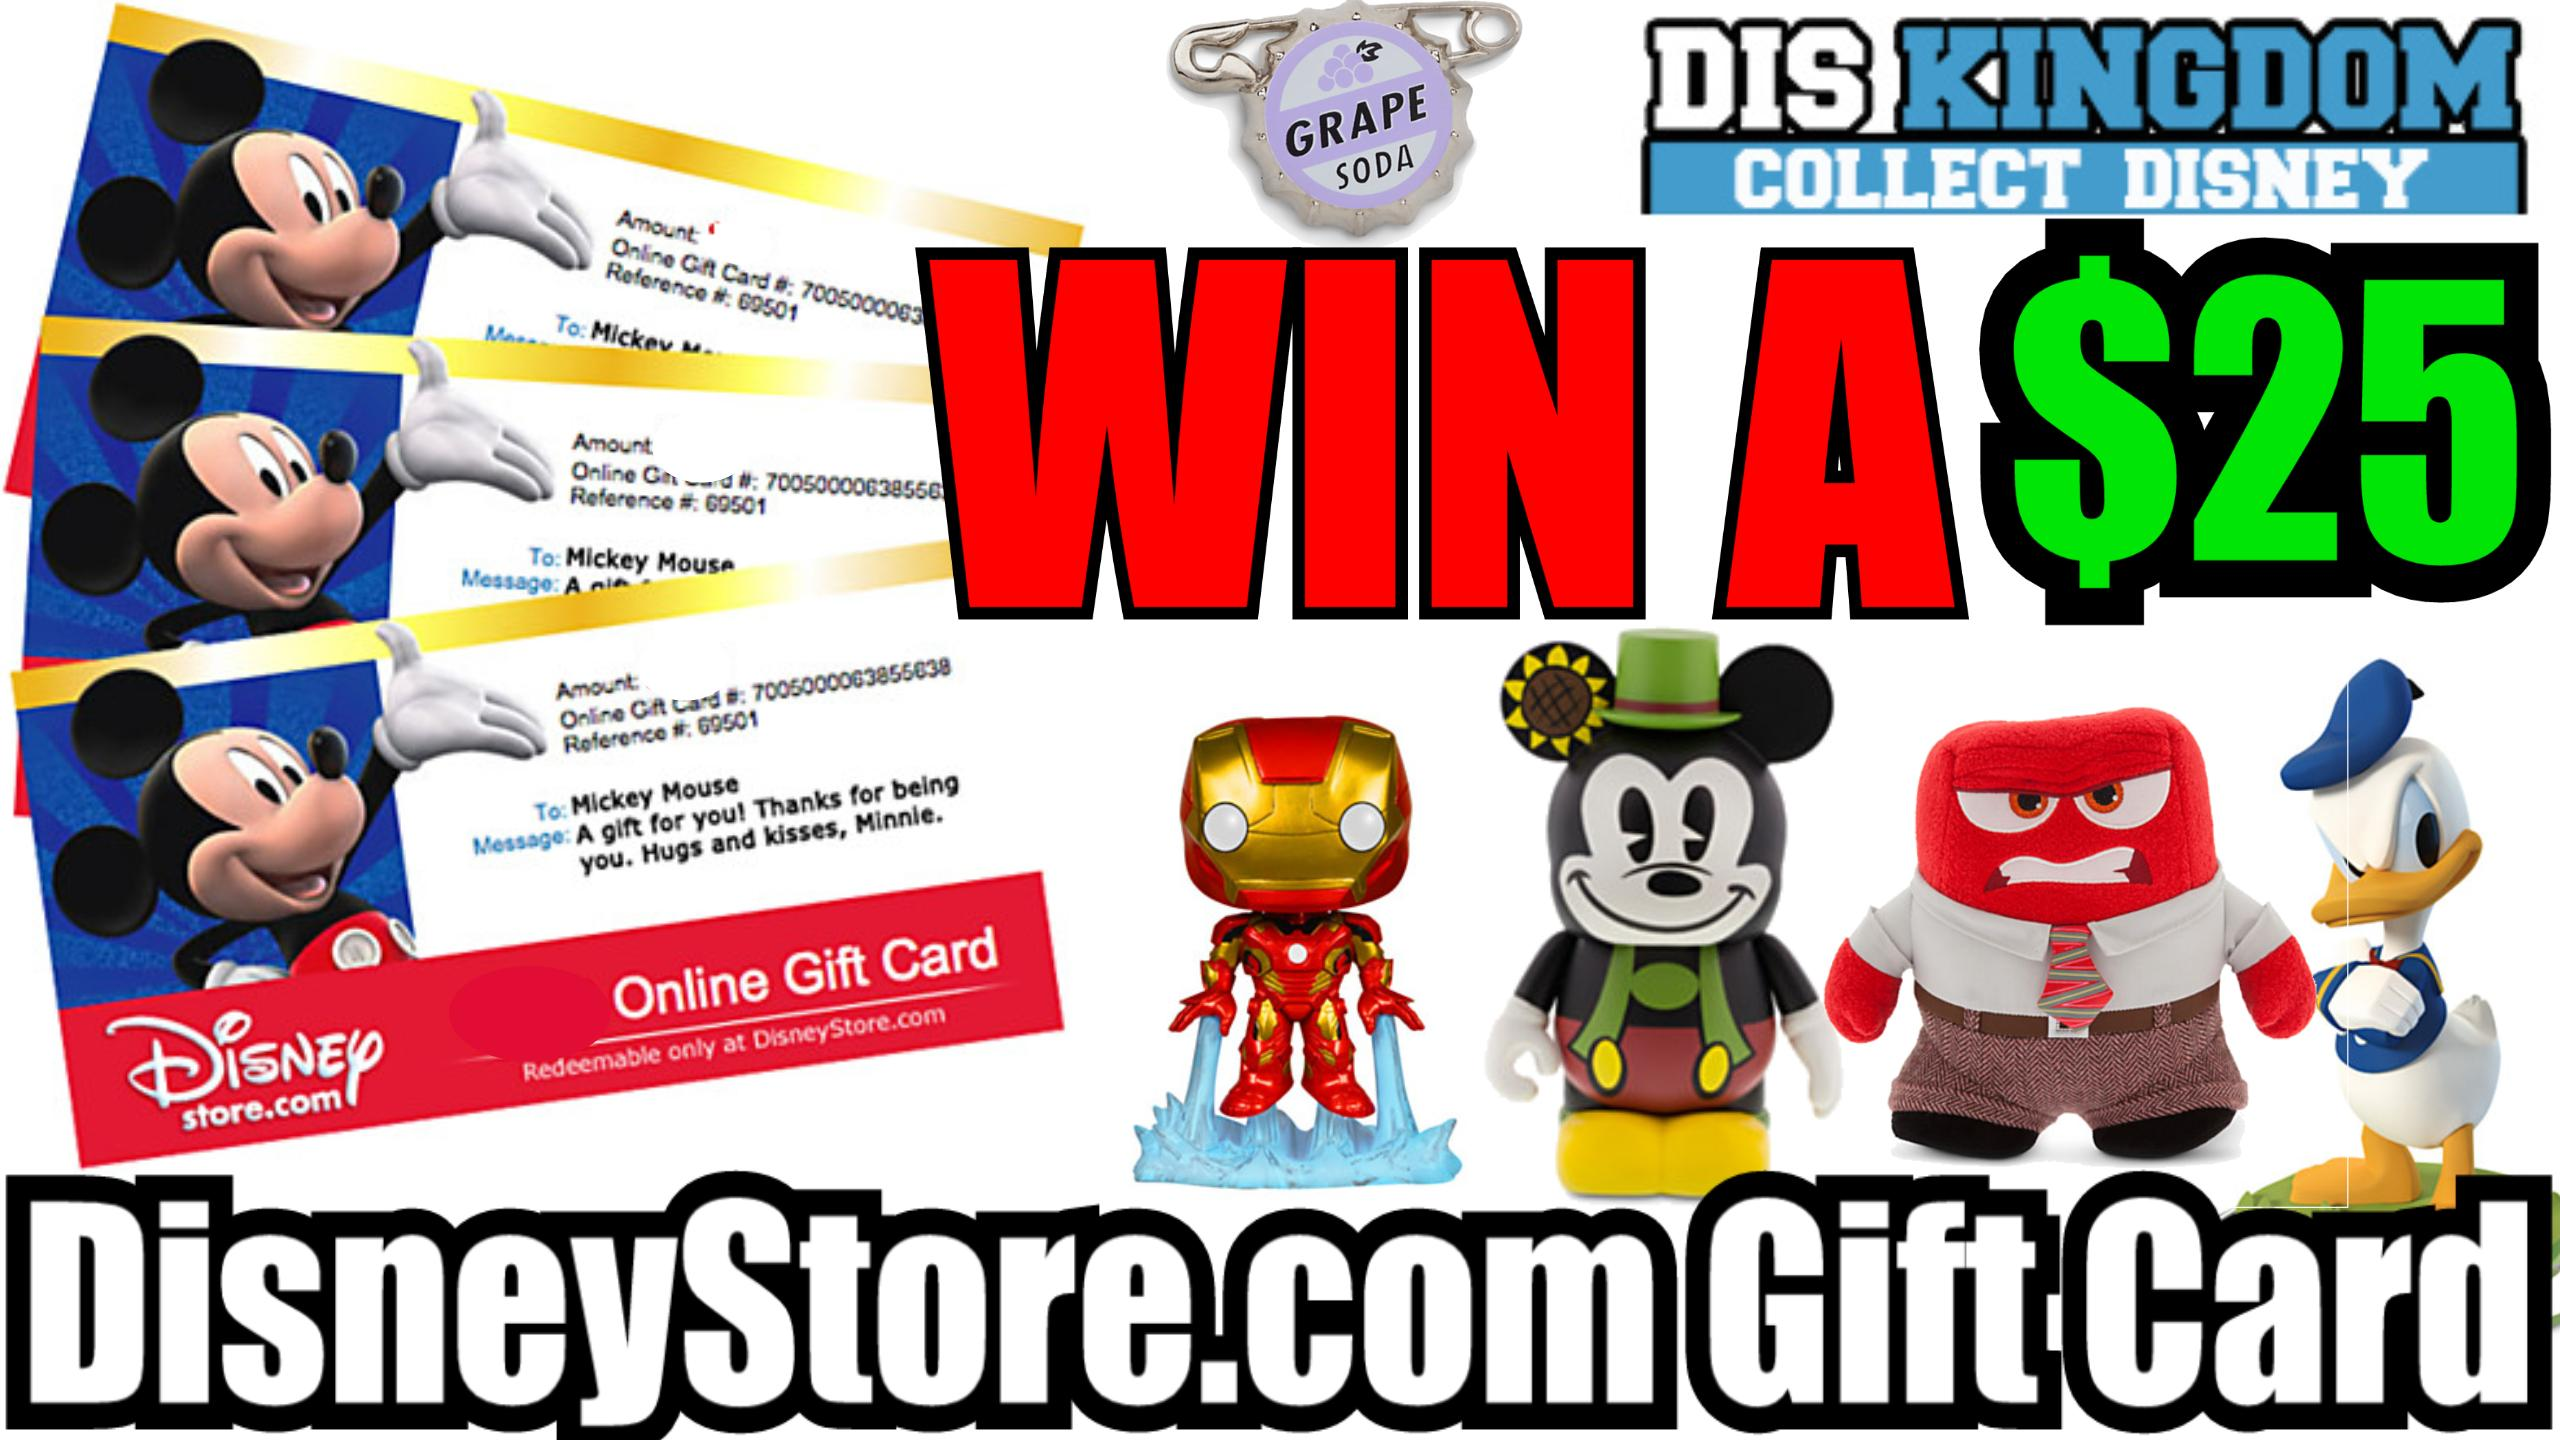 Disney Store Coupon Codes. costumes, stuffed animals, and DVDs. The Disney Store caters to a wide range of ages, girls and boys alike. They selection is huge, as they keep up with the classic Disney as well as the newer Disney characters and movies. Everyone loves fonodeqajebajof.gq whether an adult or a kid! Here you choose from a great.